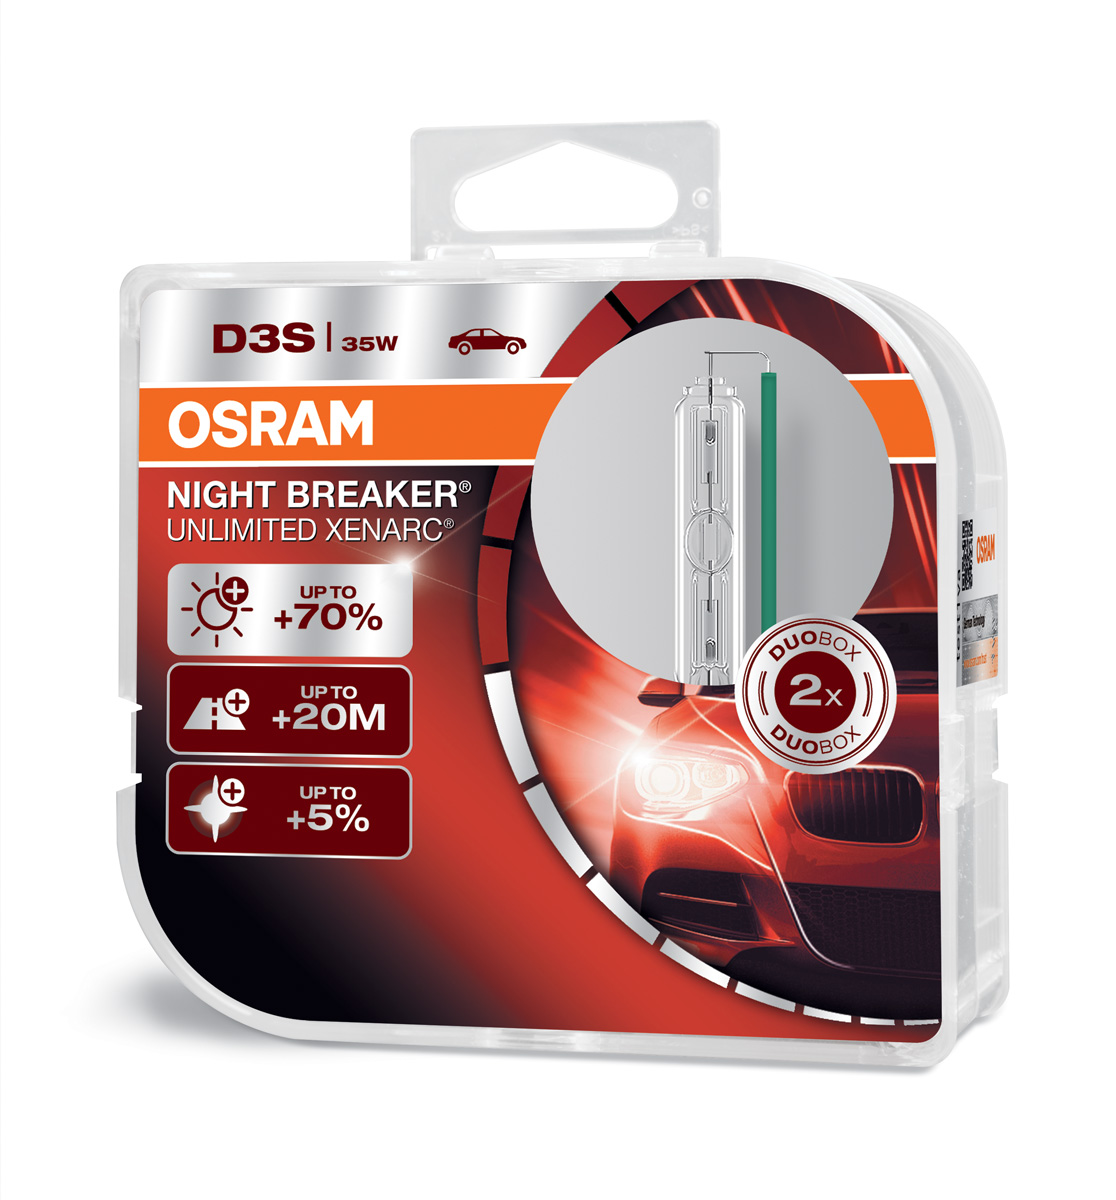 osram d3s night breaker unlimited xenarc bulbs x2 hid. Black Bedroom Furniture Sets. Home Design Ideas